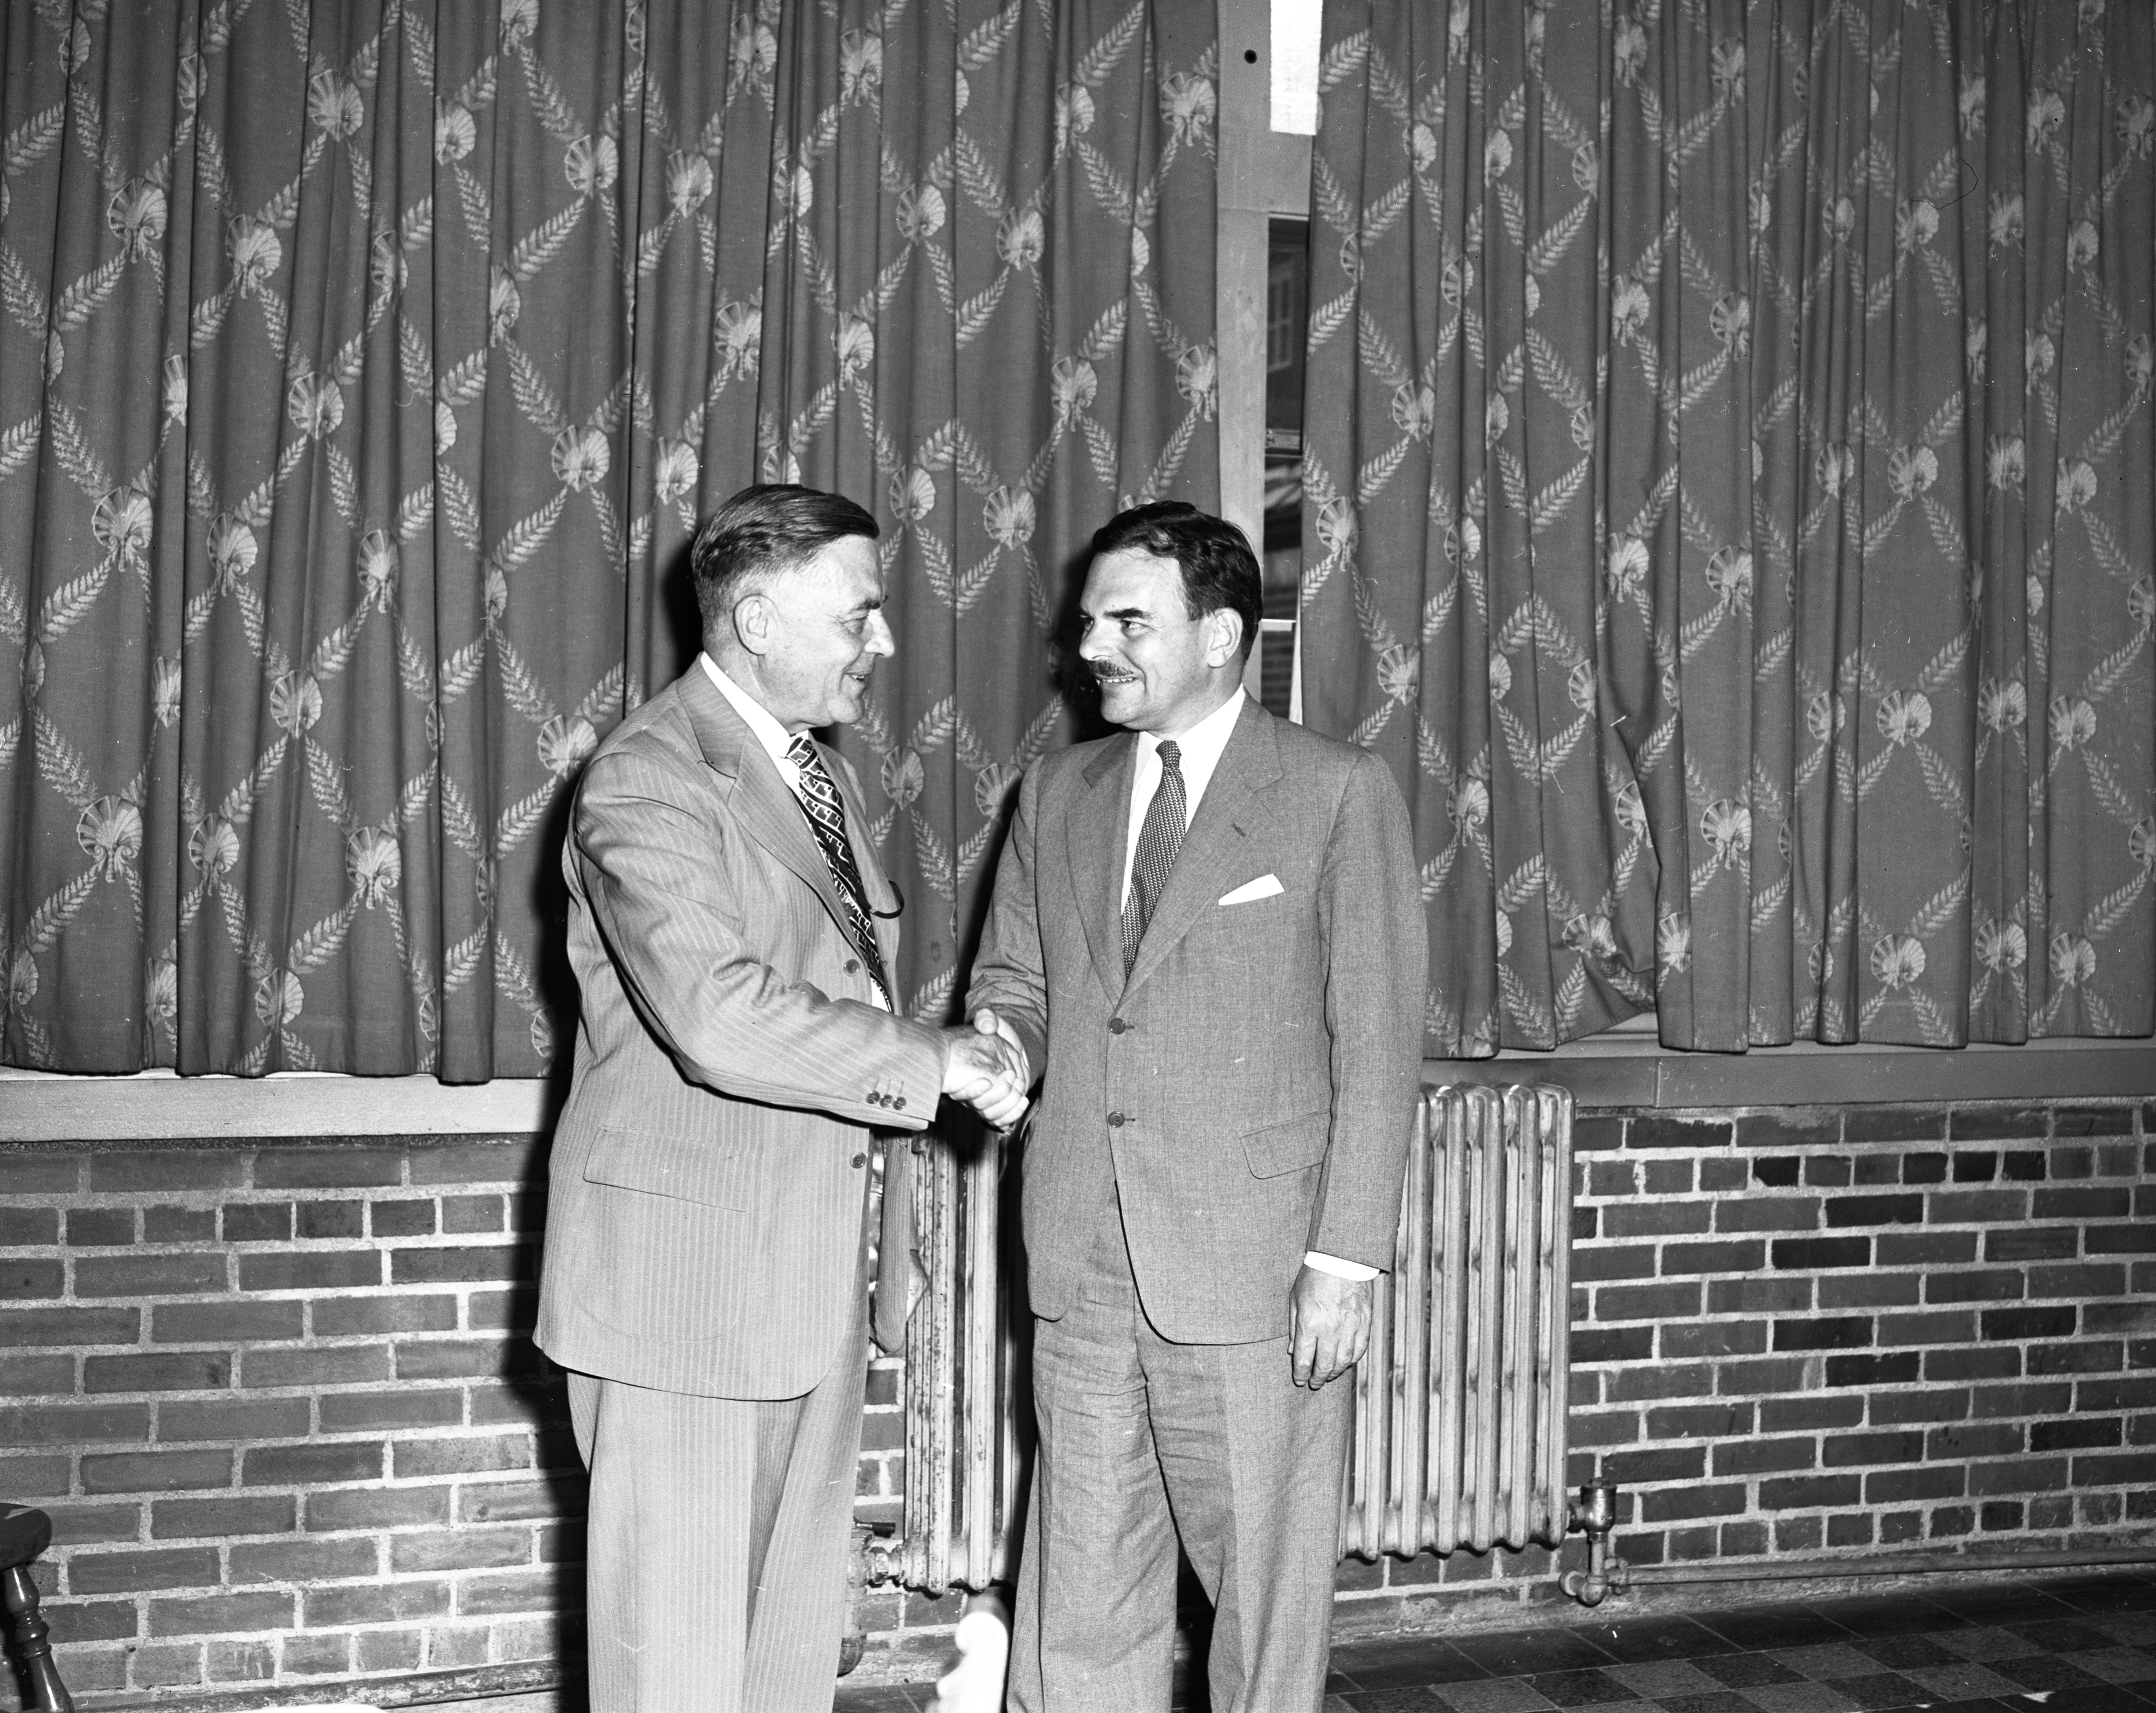 Gov. Thomas E. Dewey Greeted By University of Michigan President Alexander G. Ruthven, July 1947 image